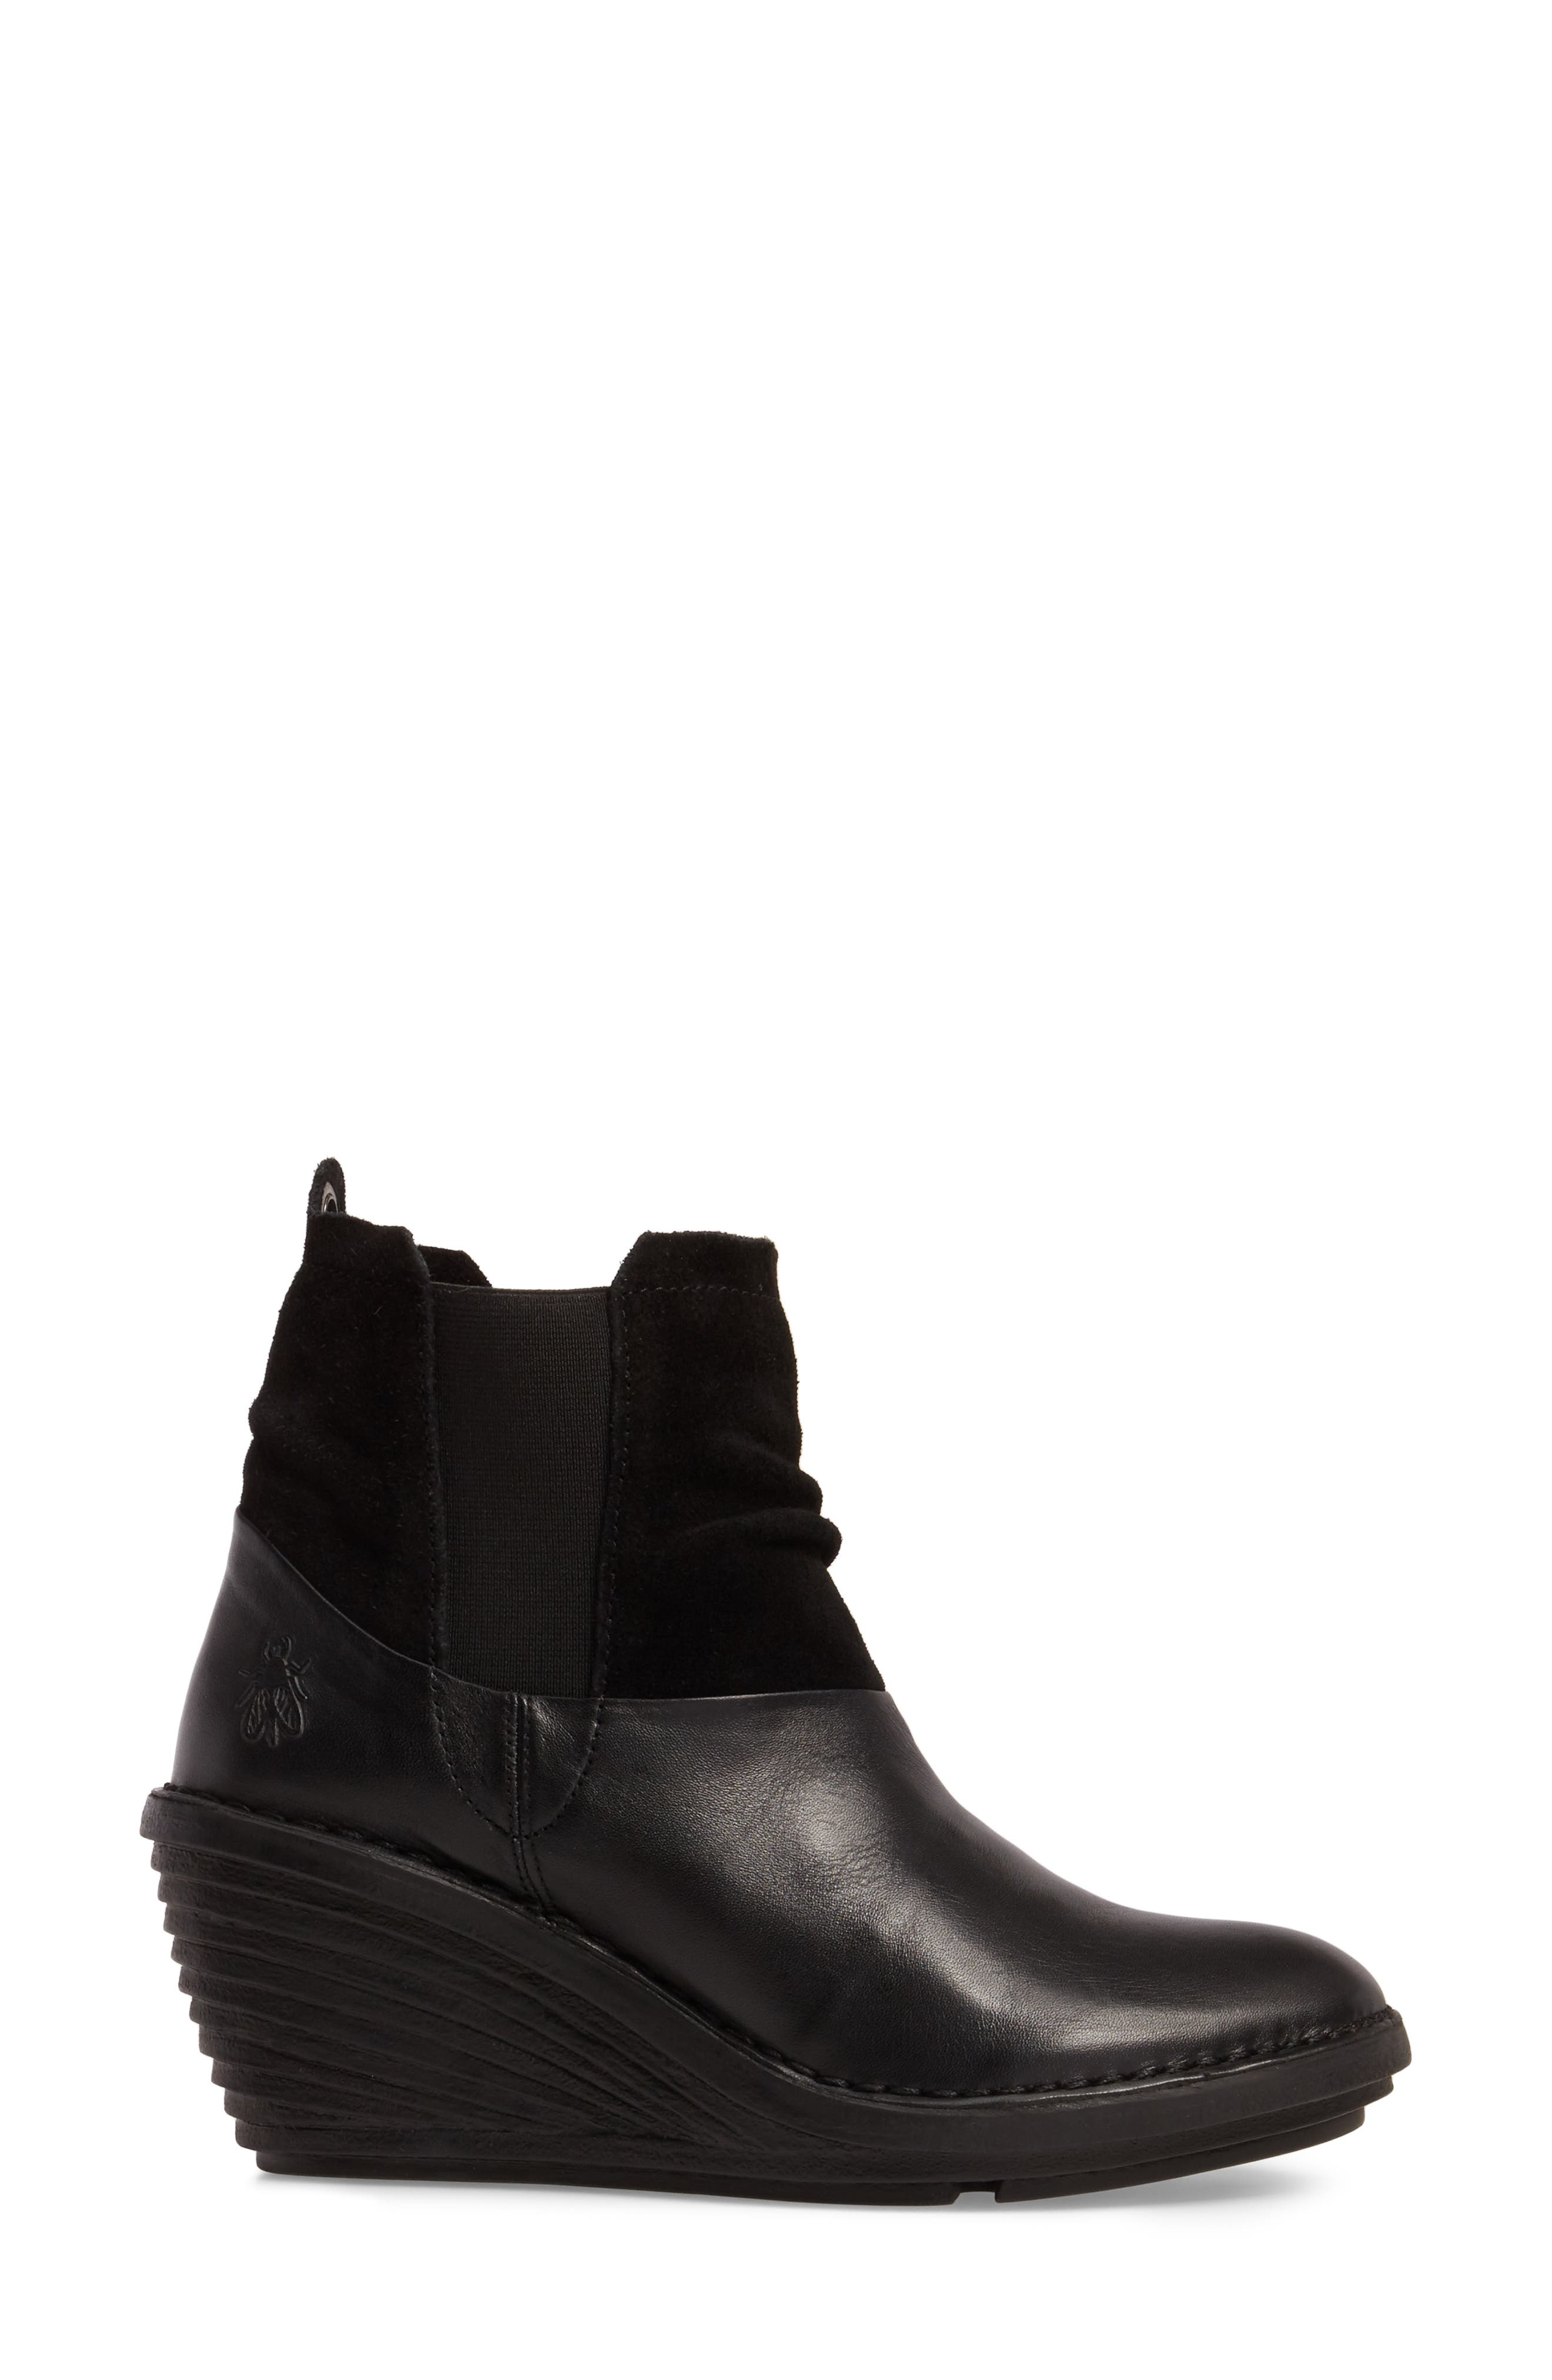 Alternate Image 3  - Fly London Sula Wedge Bootie (Women)